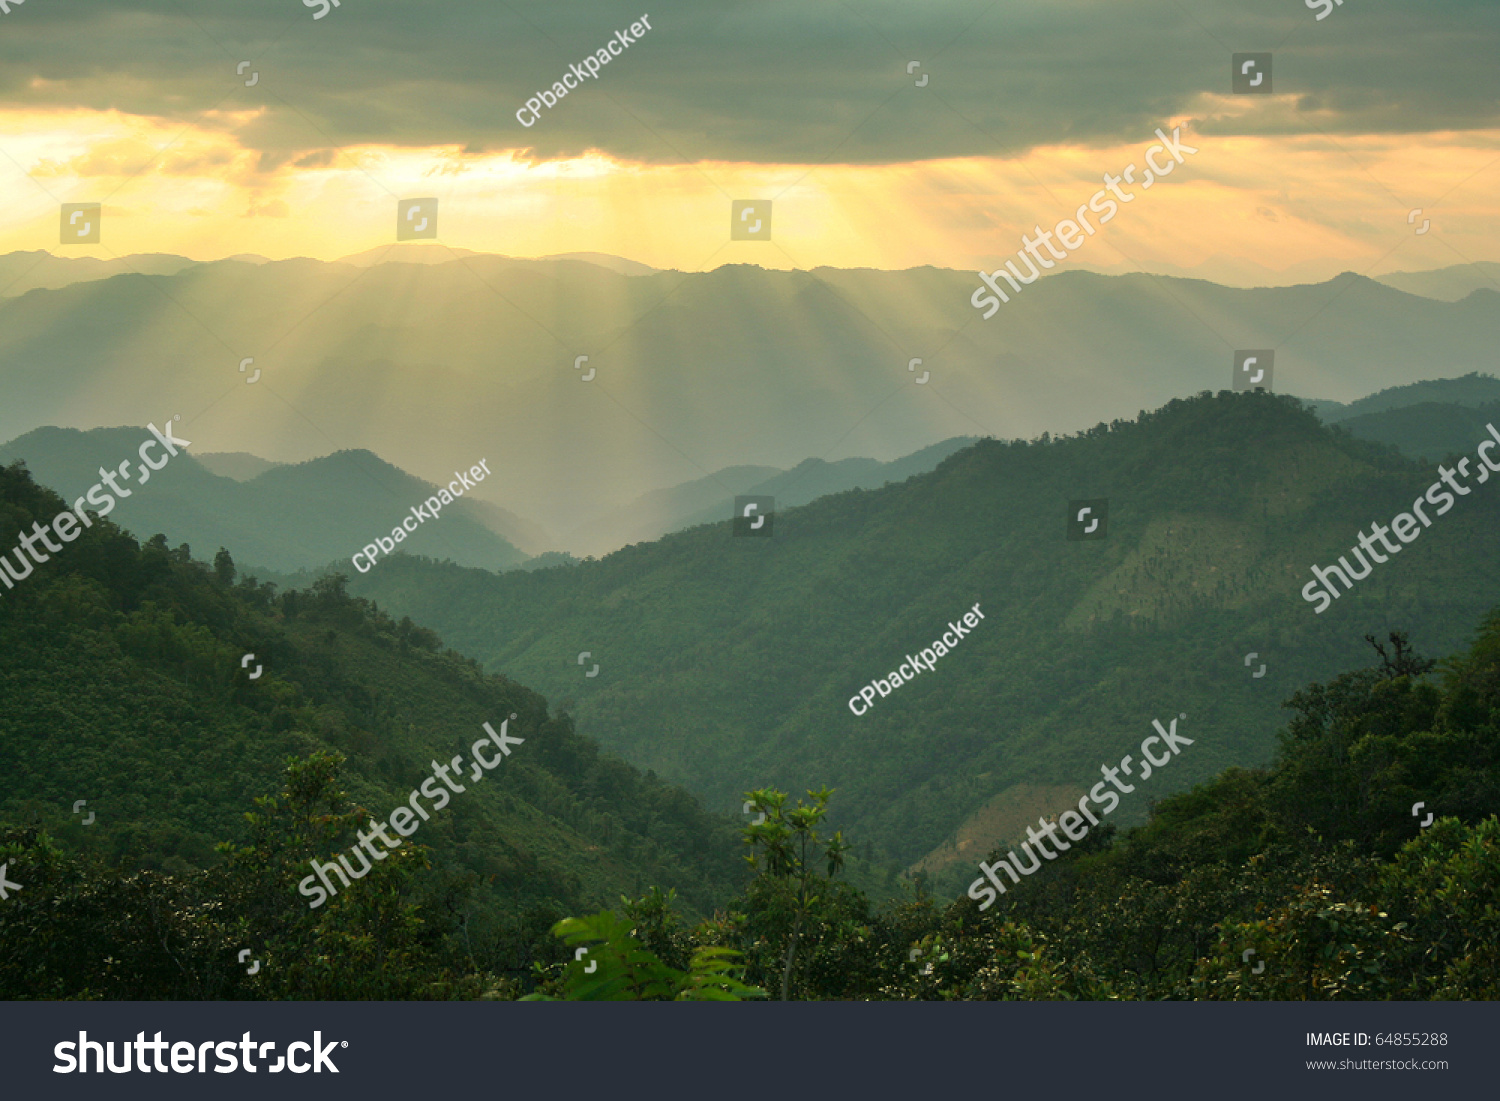 Sun shining through thick cloudy sky is golden light illuminating on the mountains. Located in Mae Ngao national park in Mae Hong Son province, northern of Thailand. #64855288